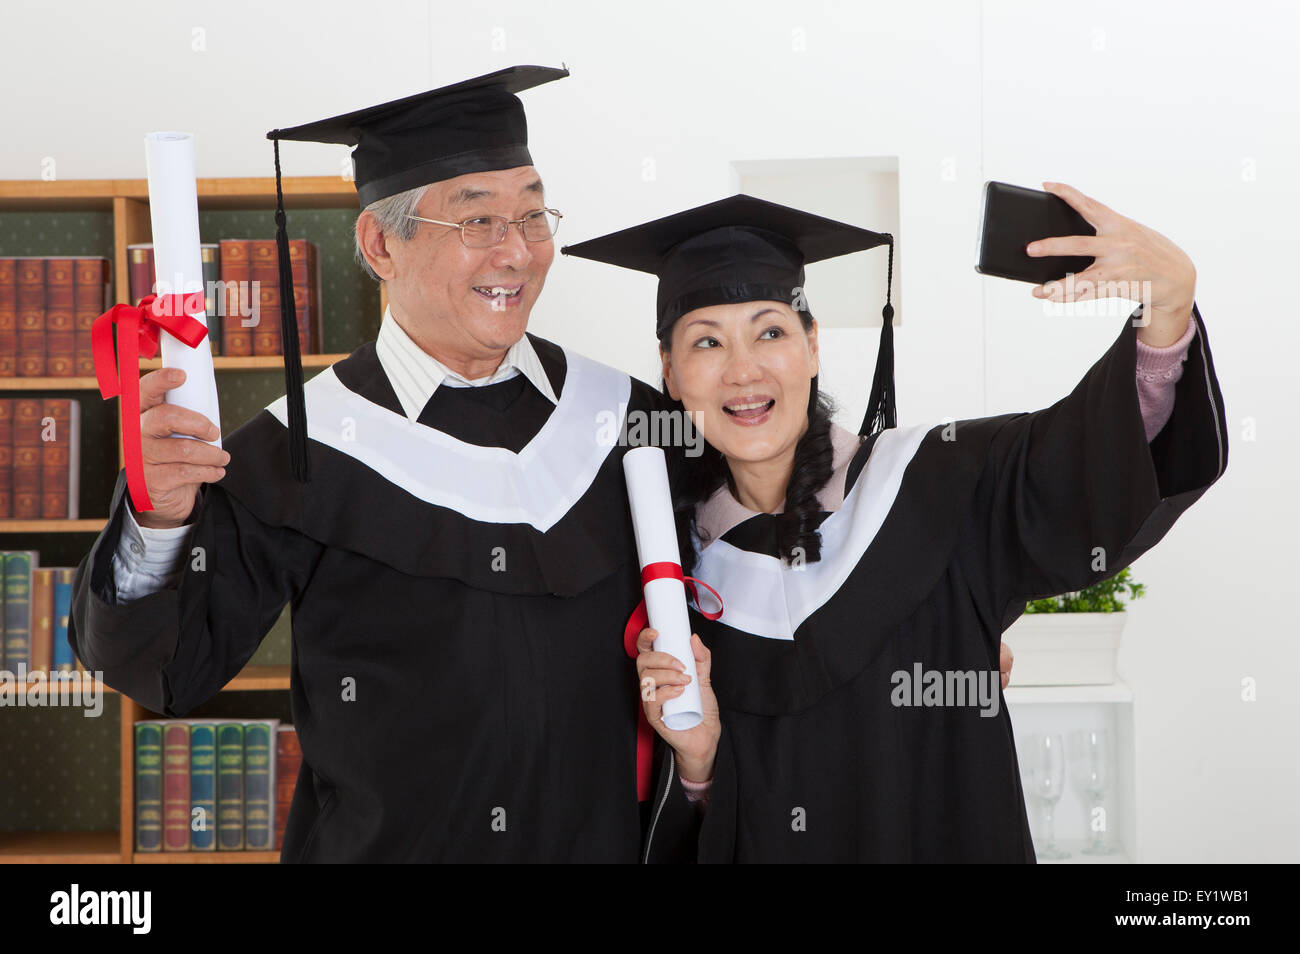 Senior couple wearing graduation gown and holding diploma with smile ...